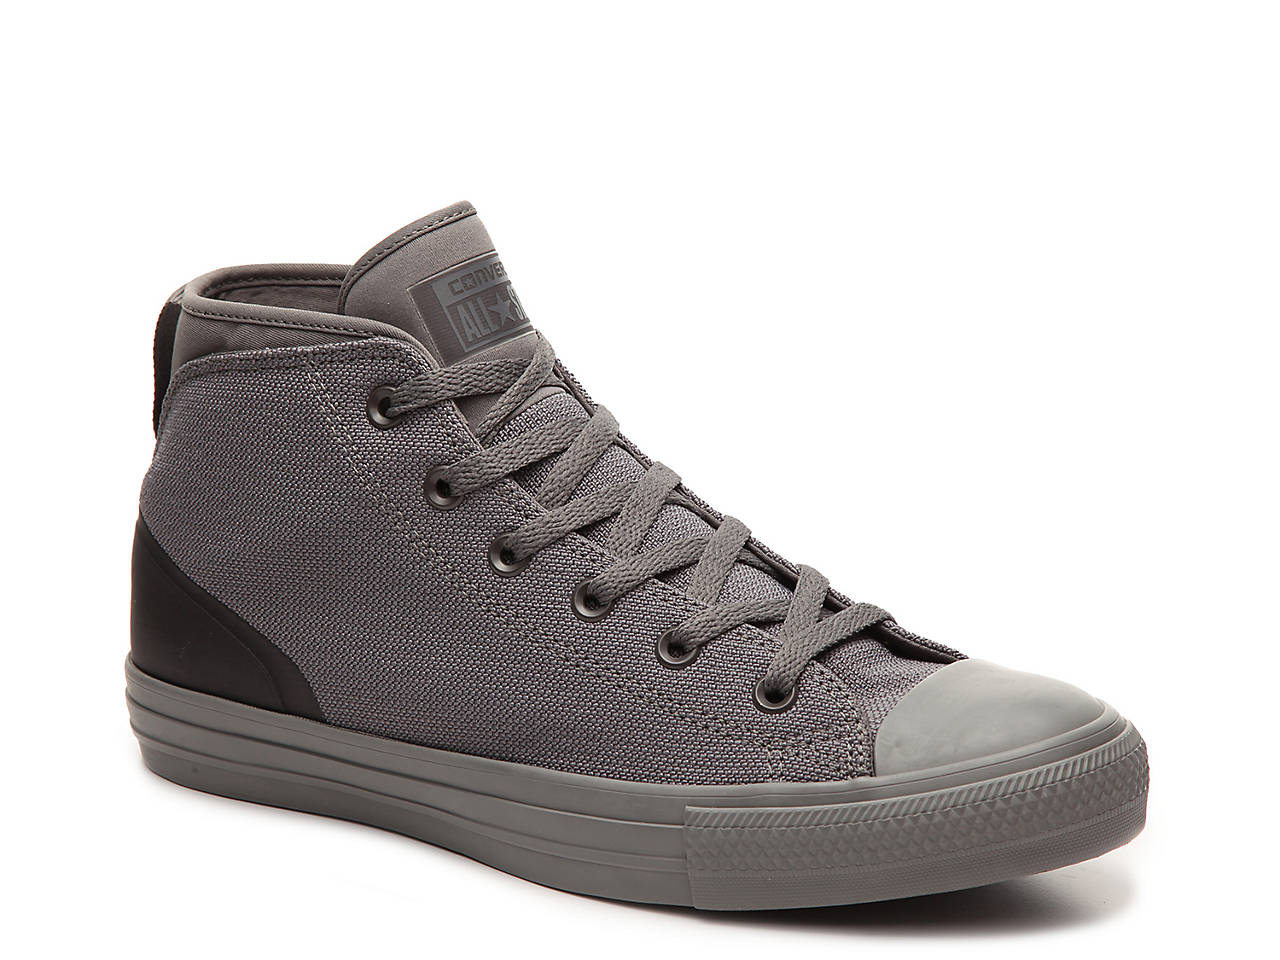 26dbc7c70ce Converse Chuck Taylor All Star Syde Street High-Top Sneaker ...